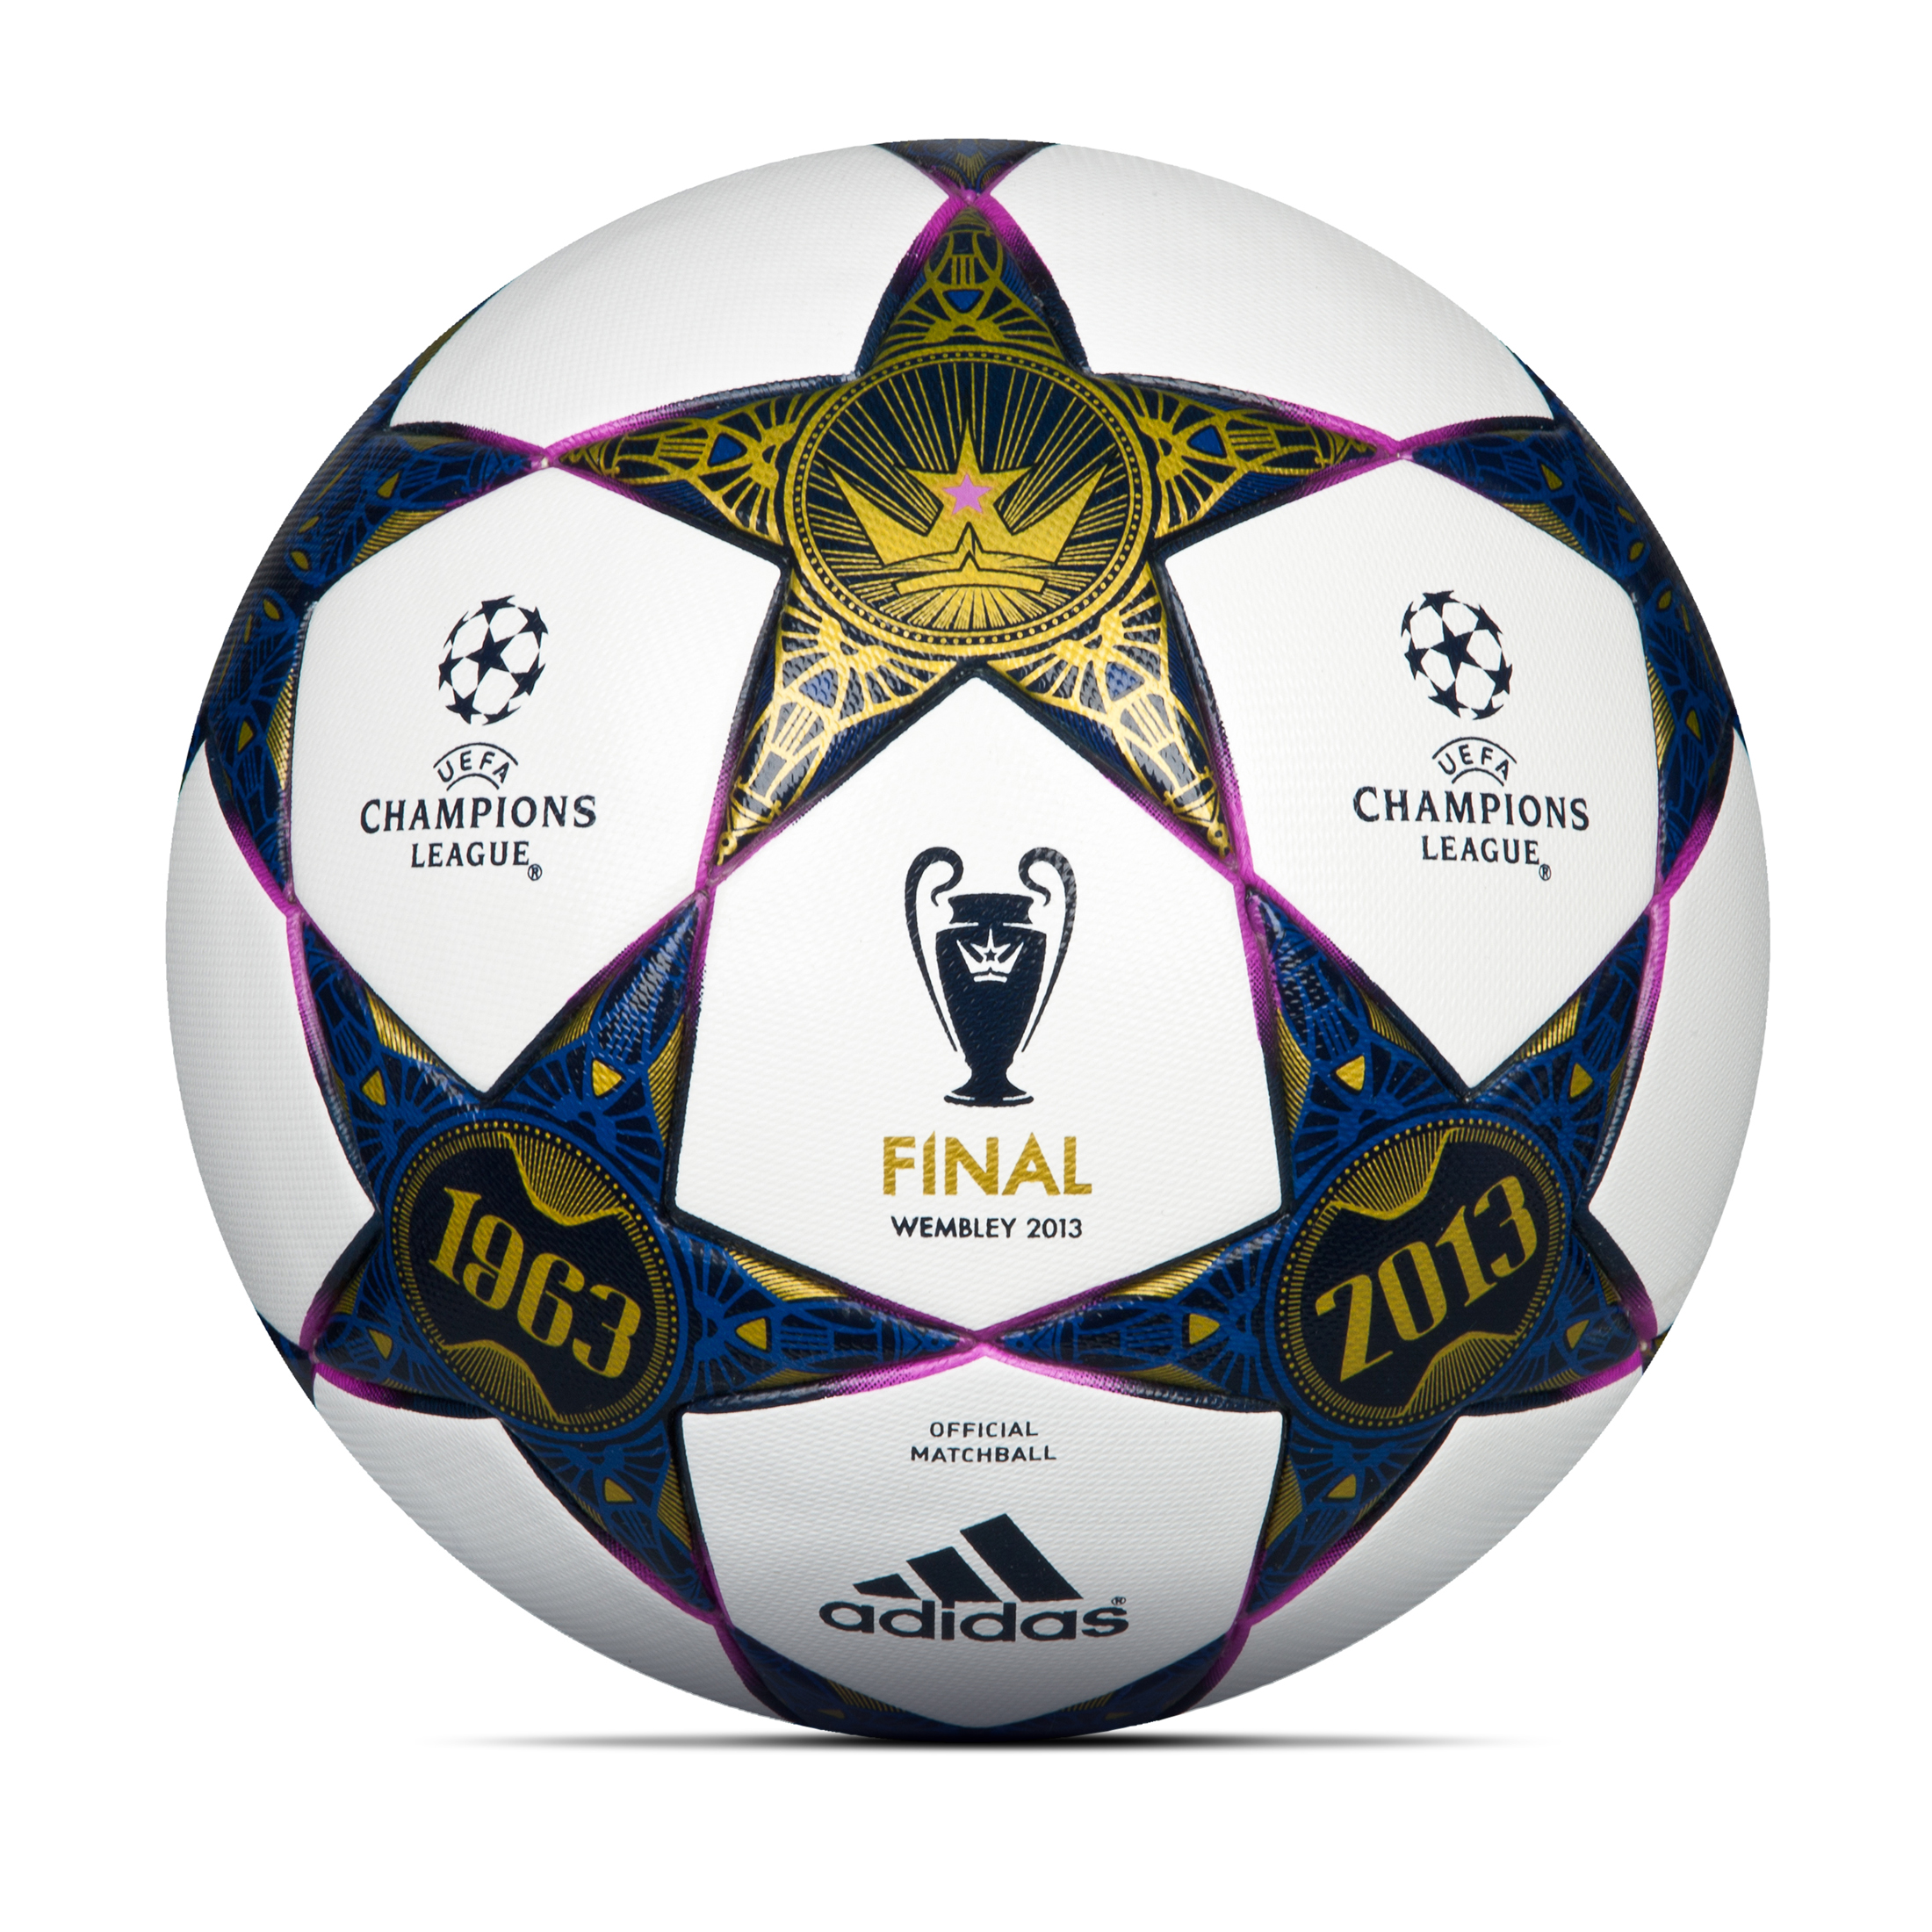 adidas UCL Final Wembley Official Match Ball - White/Pantone/Vivid Pink